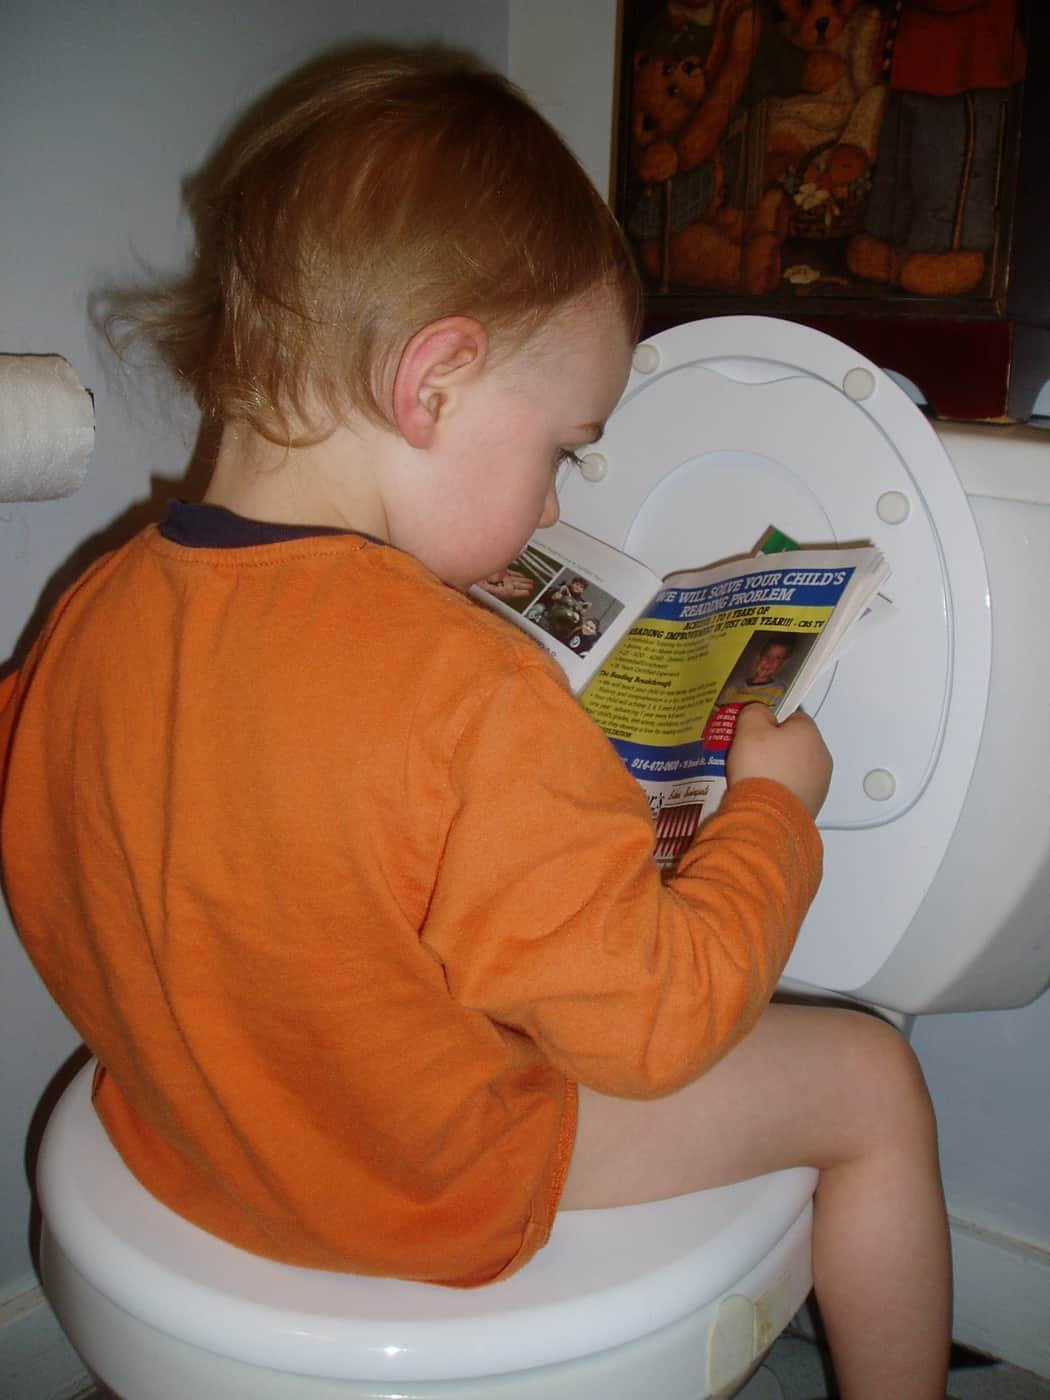 Easy Potty Training – On Their Own Terms